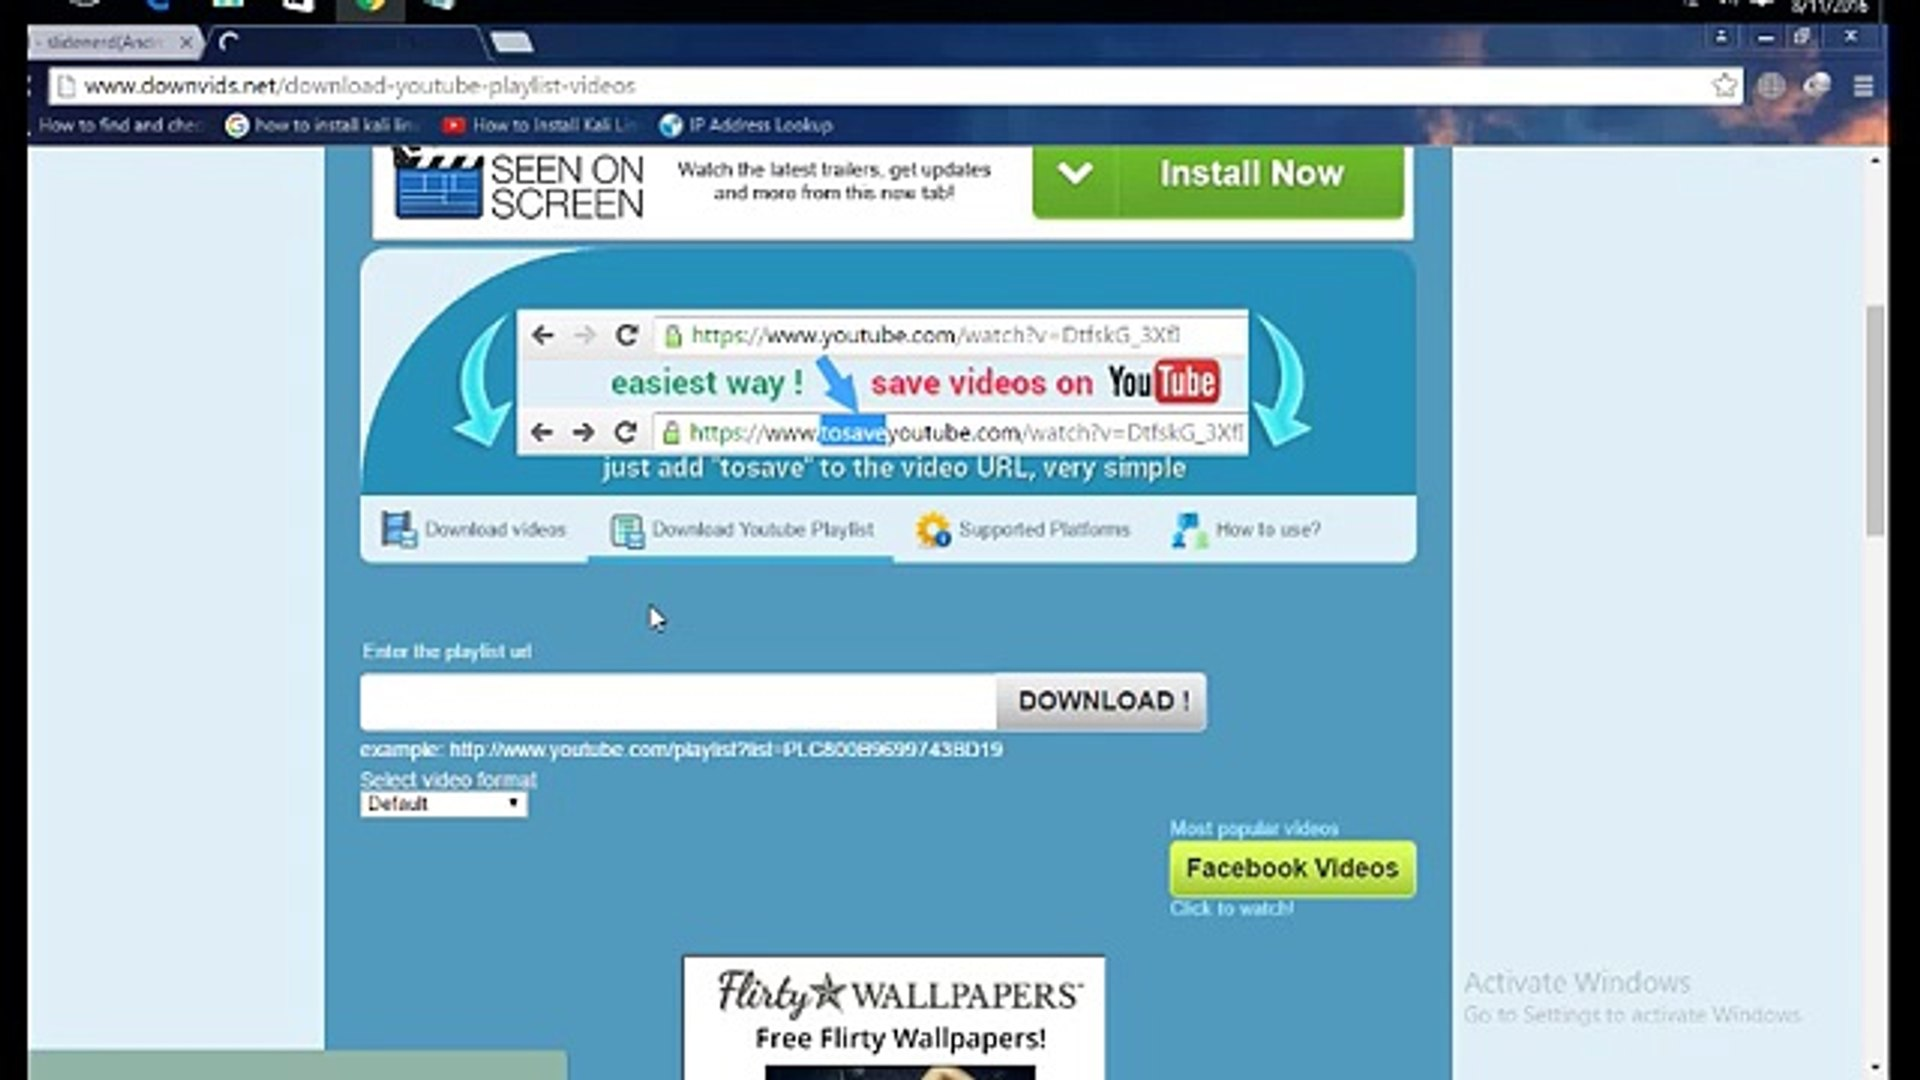 How to download Youtube playlist using Internet Download Manager (IDM) -